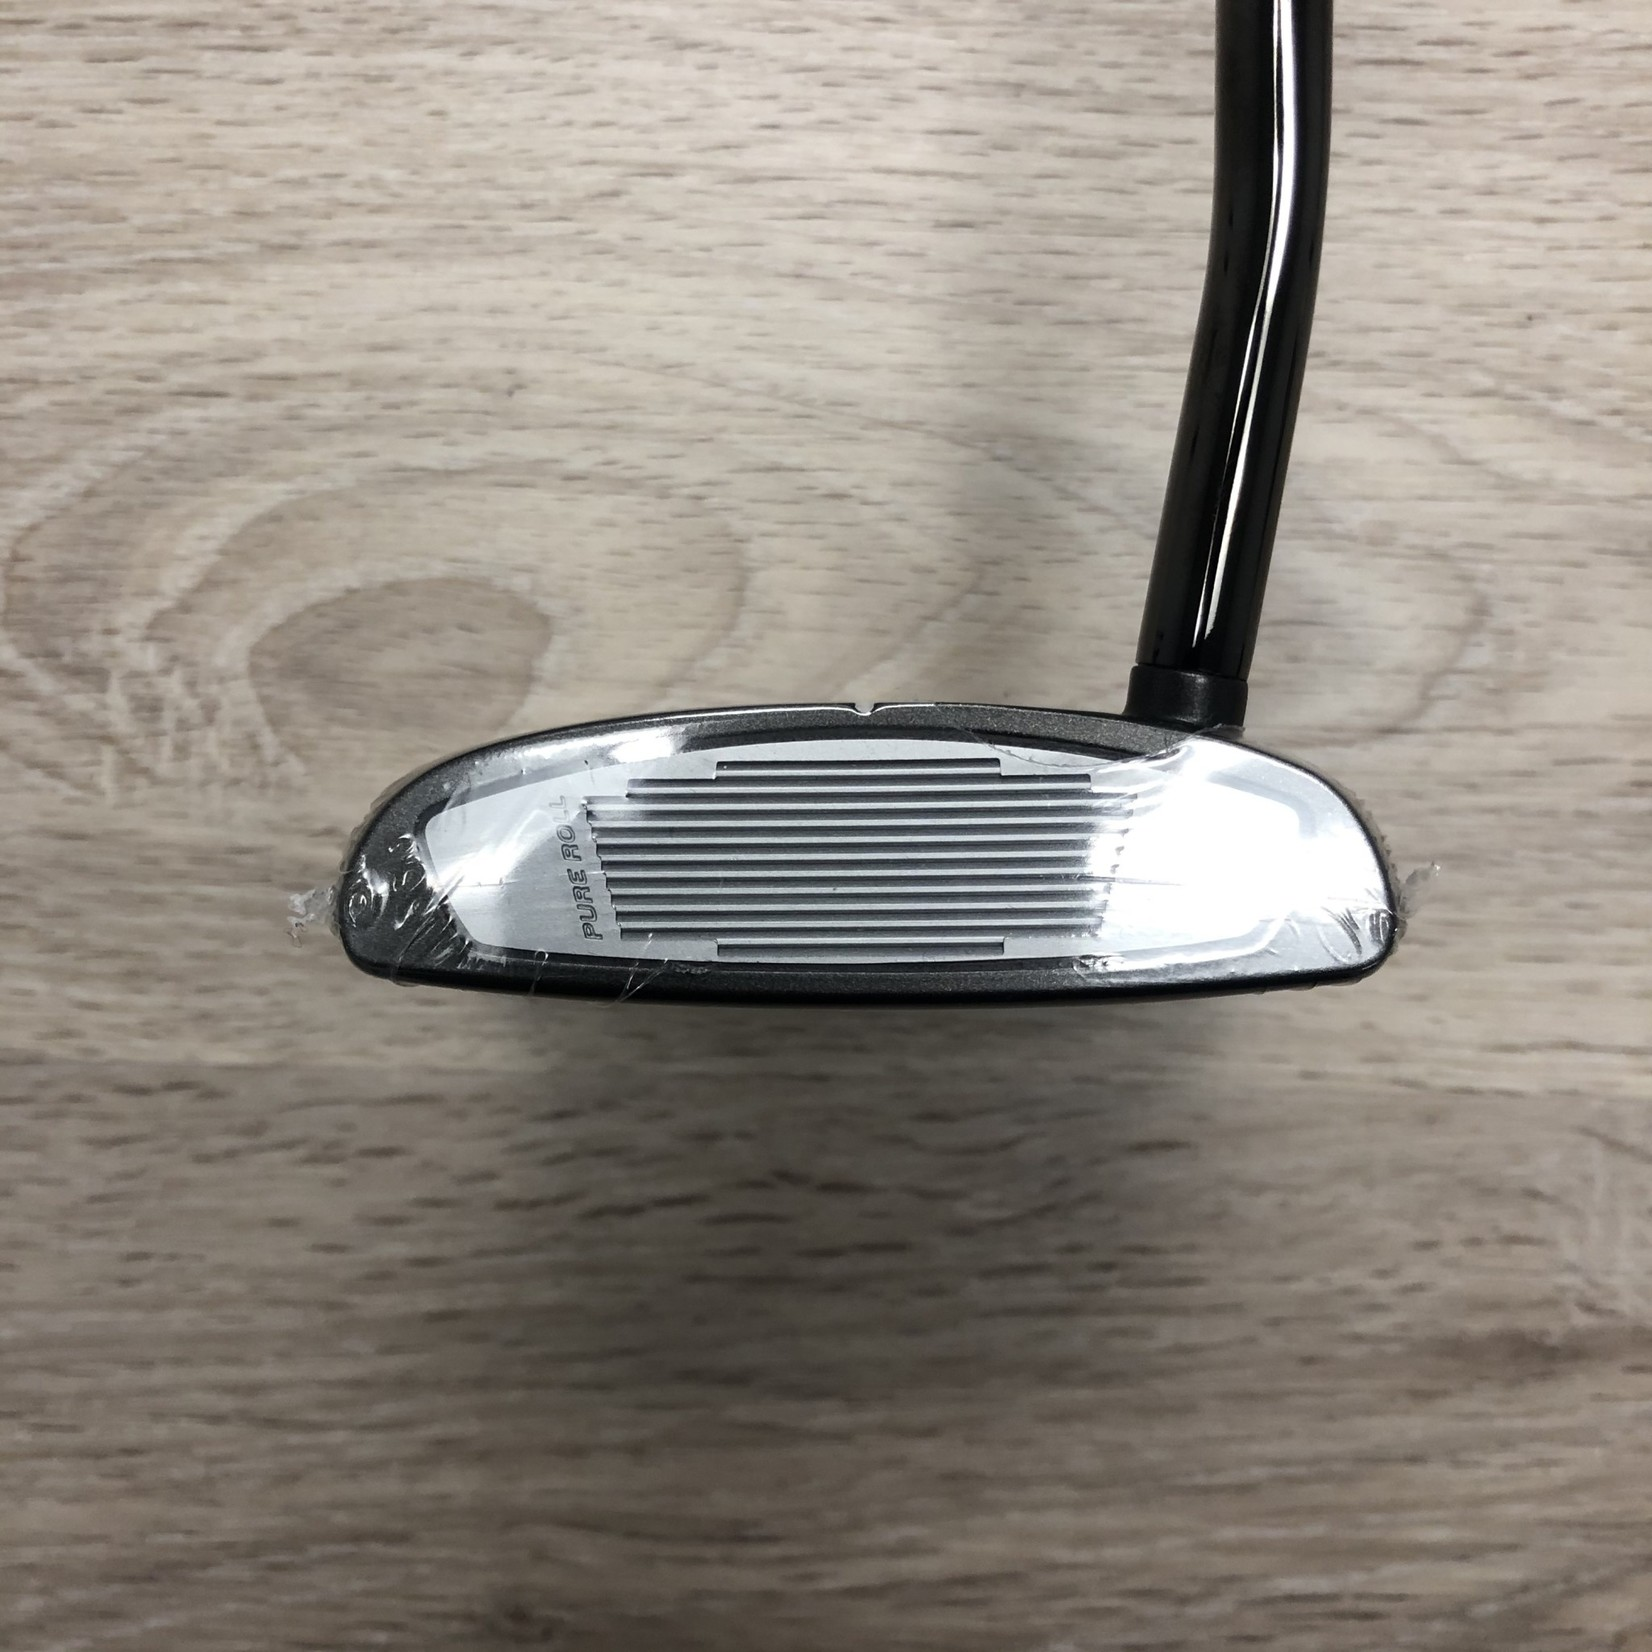 TaylorMade TaylorMade Spider Tour Double Bend Putter 34 Inches  (RH)